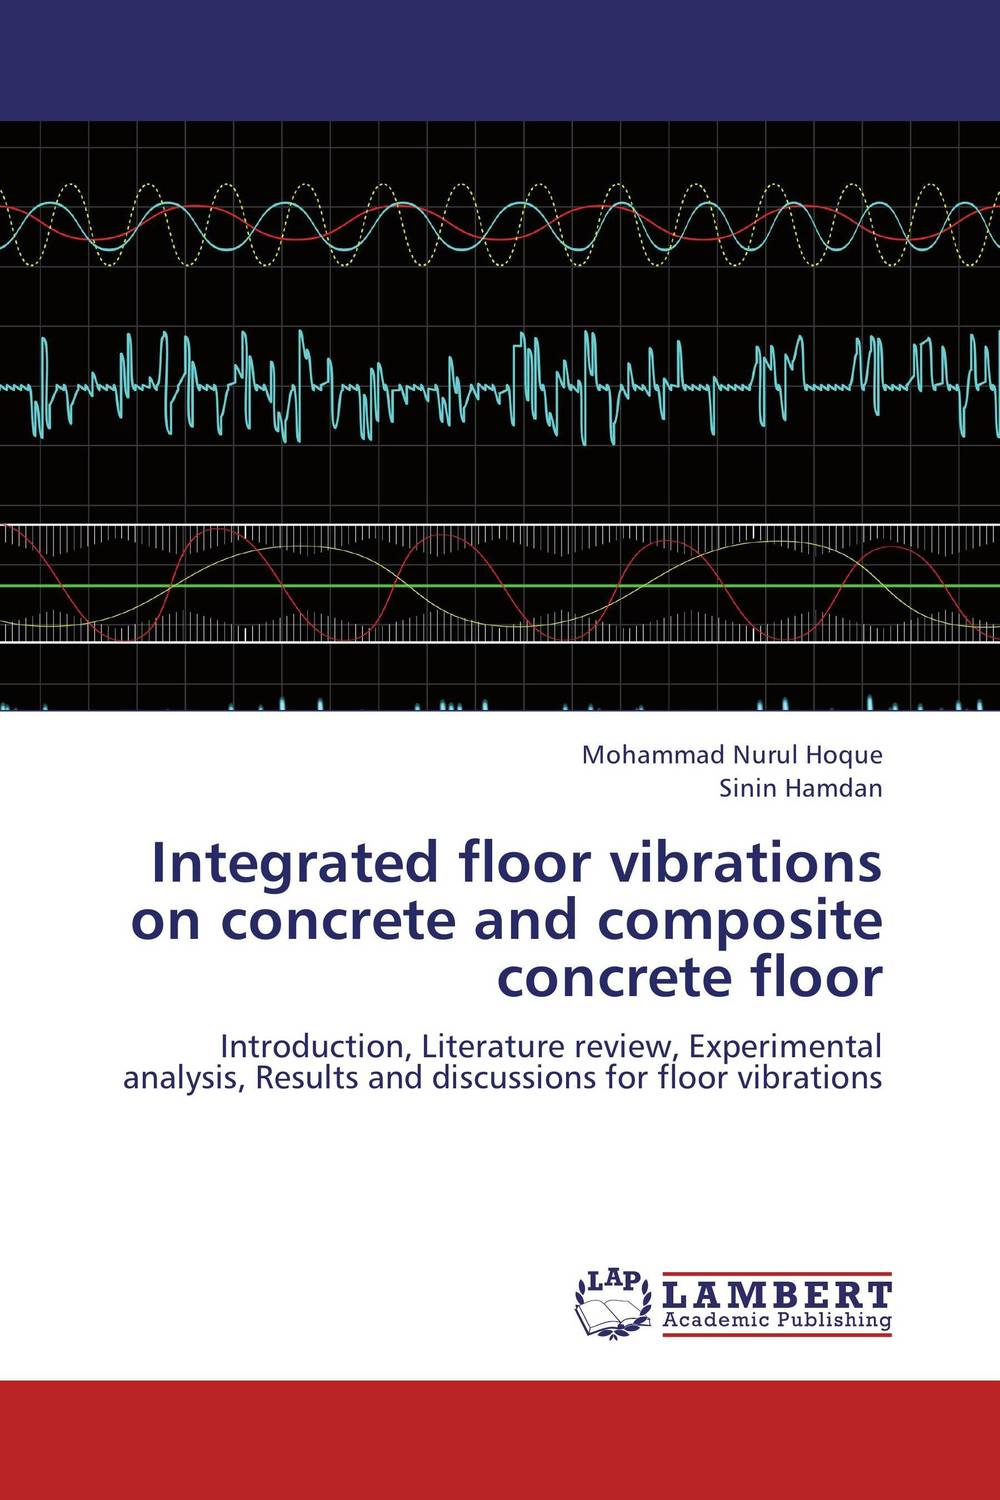 Integrated floor vibrations on concrete and composite concrete floor fatigue analysis of asphalt concrete based on crack development